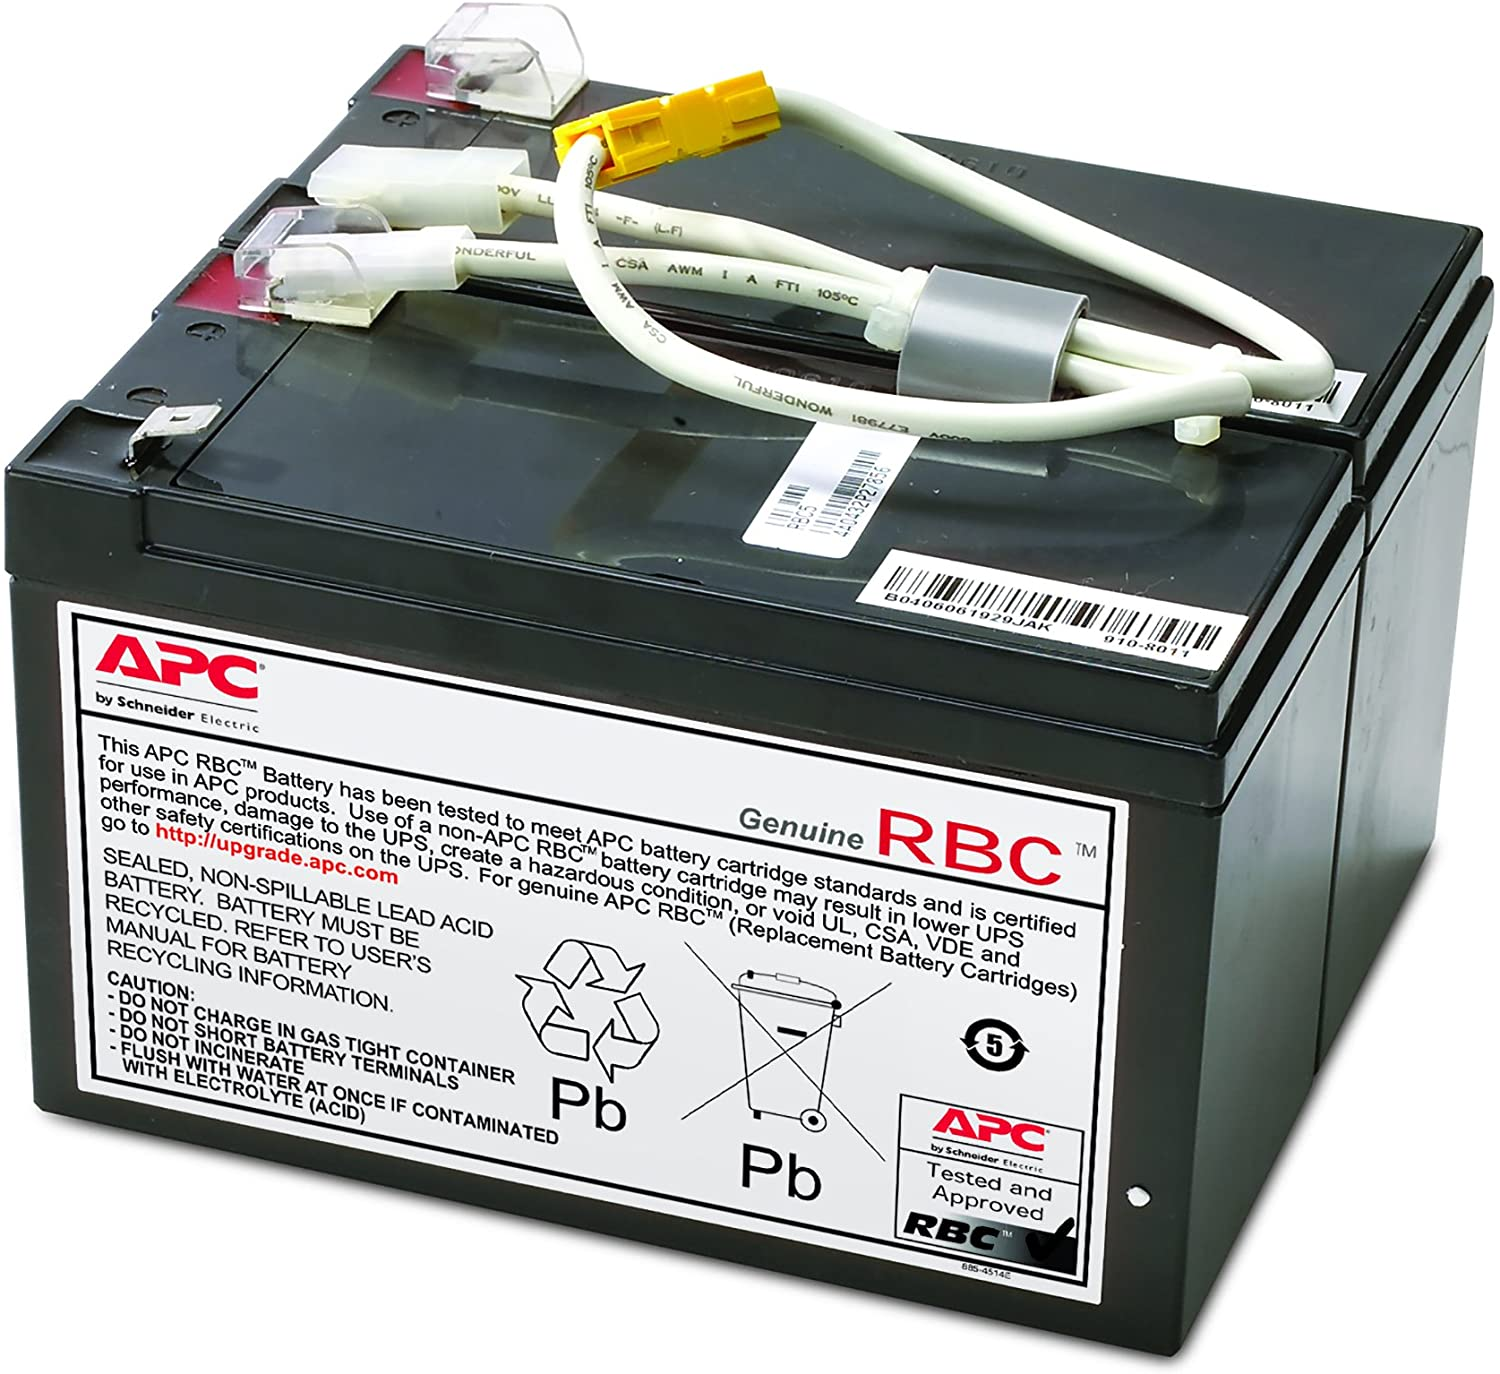 APC UPS Battery Replacement, APCRBC109, for APC UPS Models BX1500LCD BR1500LCD, BR1200G, BR1300LCD, BX1300LCD, BN1250LCD and select others